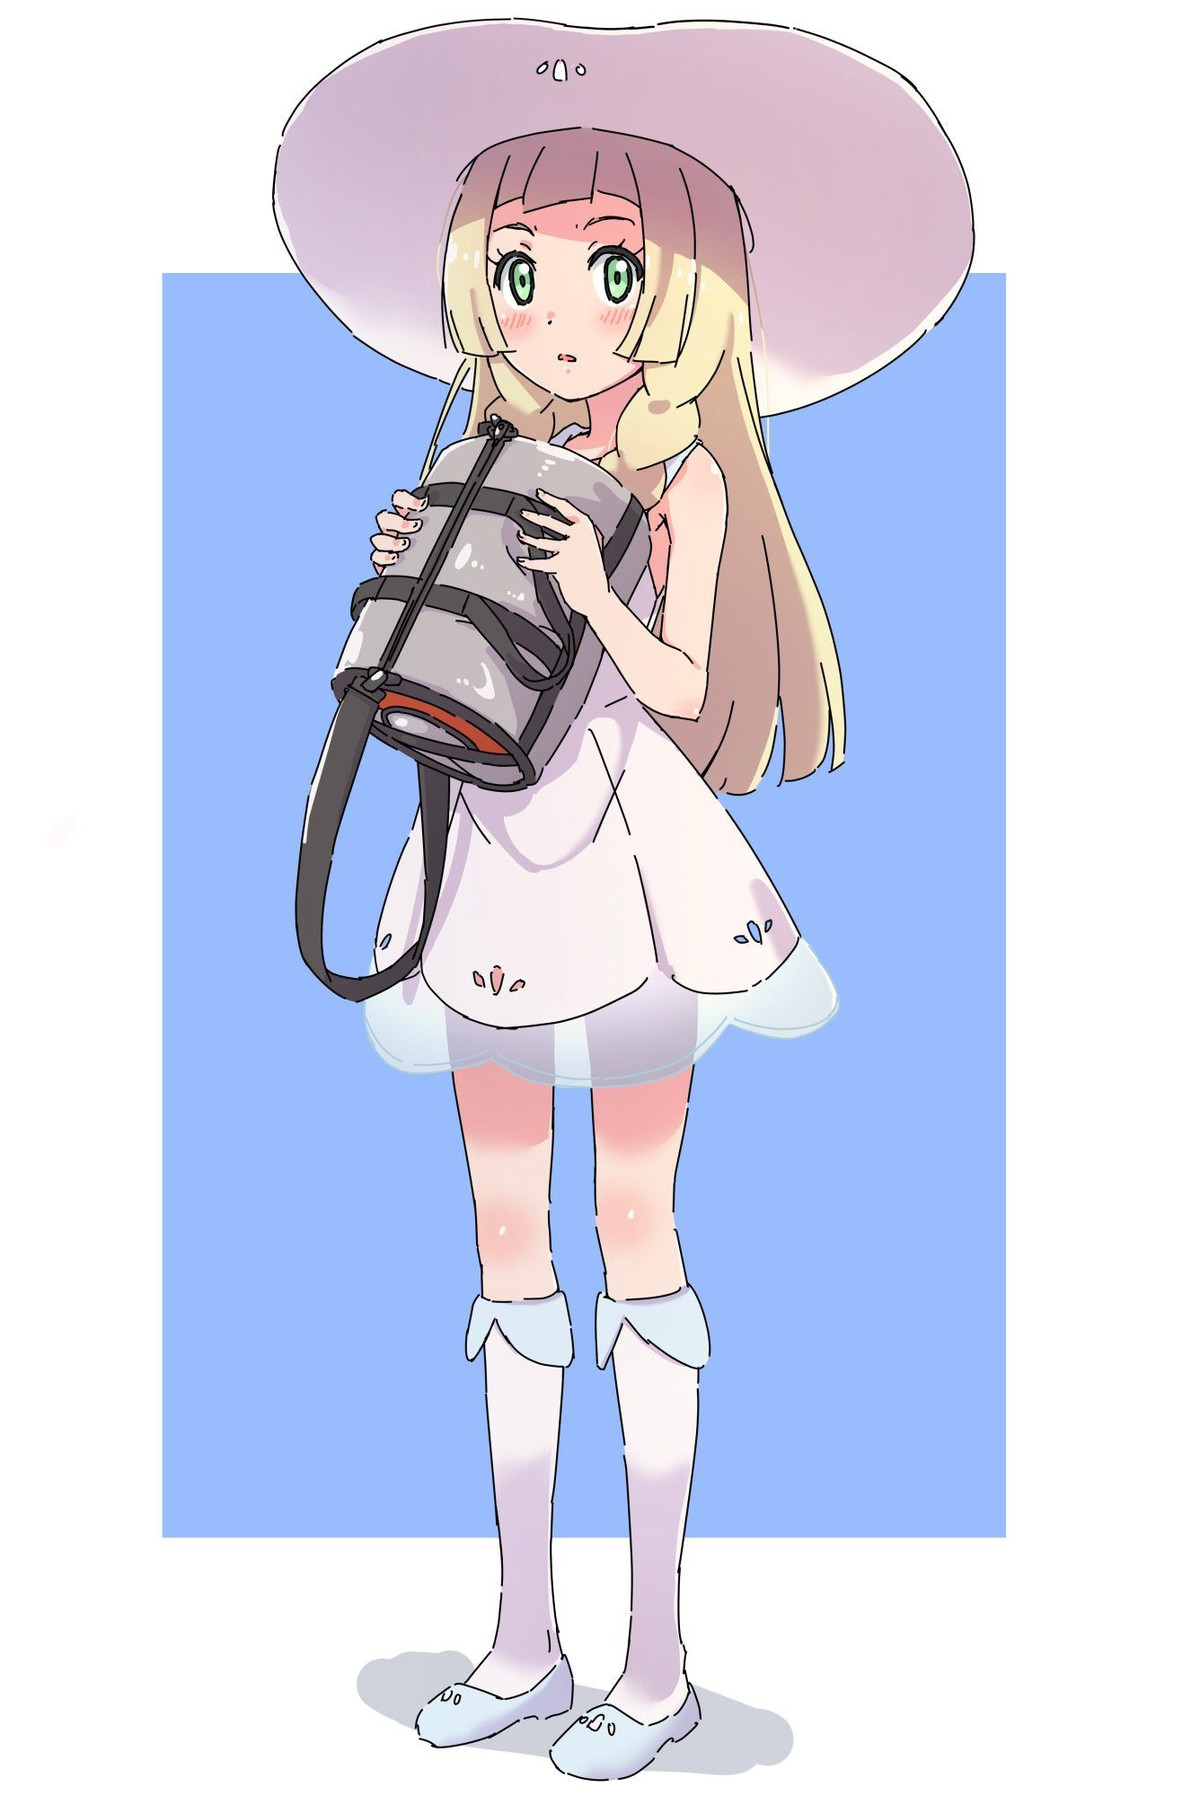 lillie_(pokemon)075